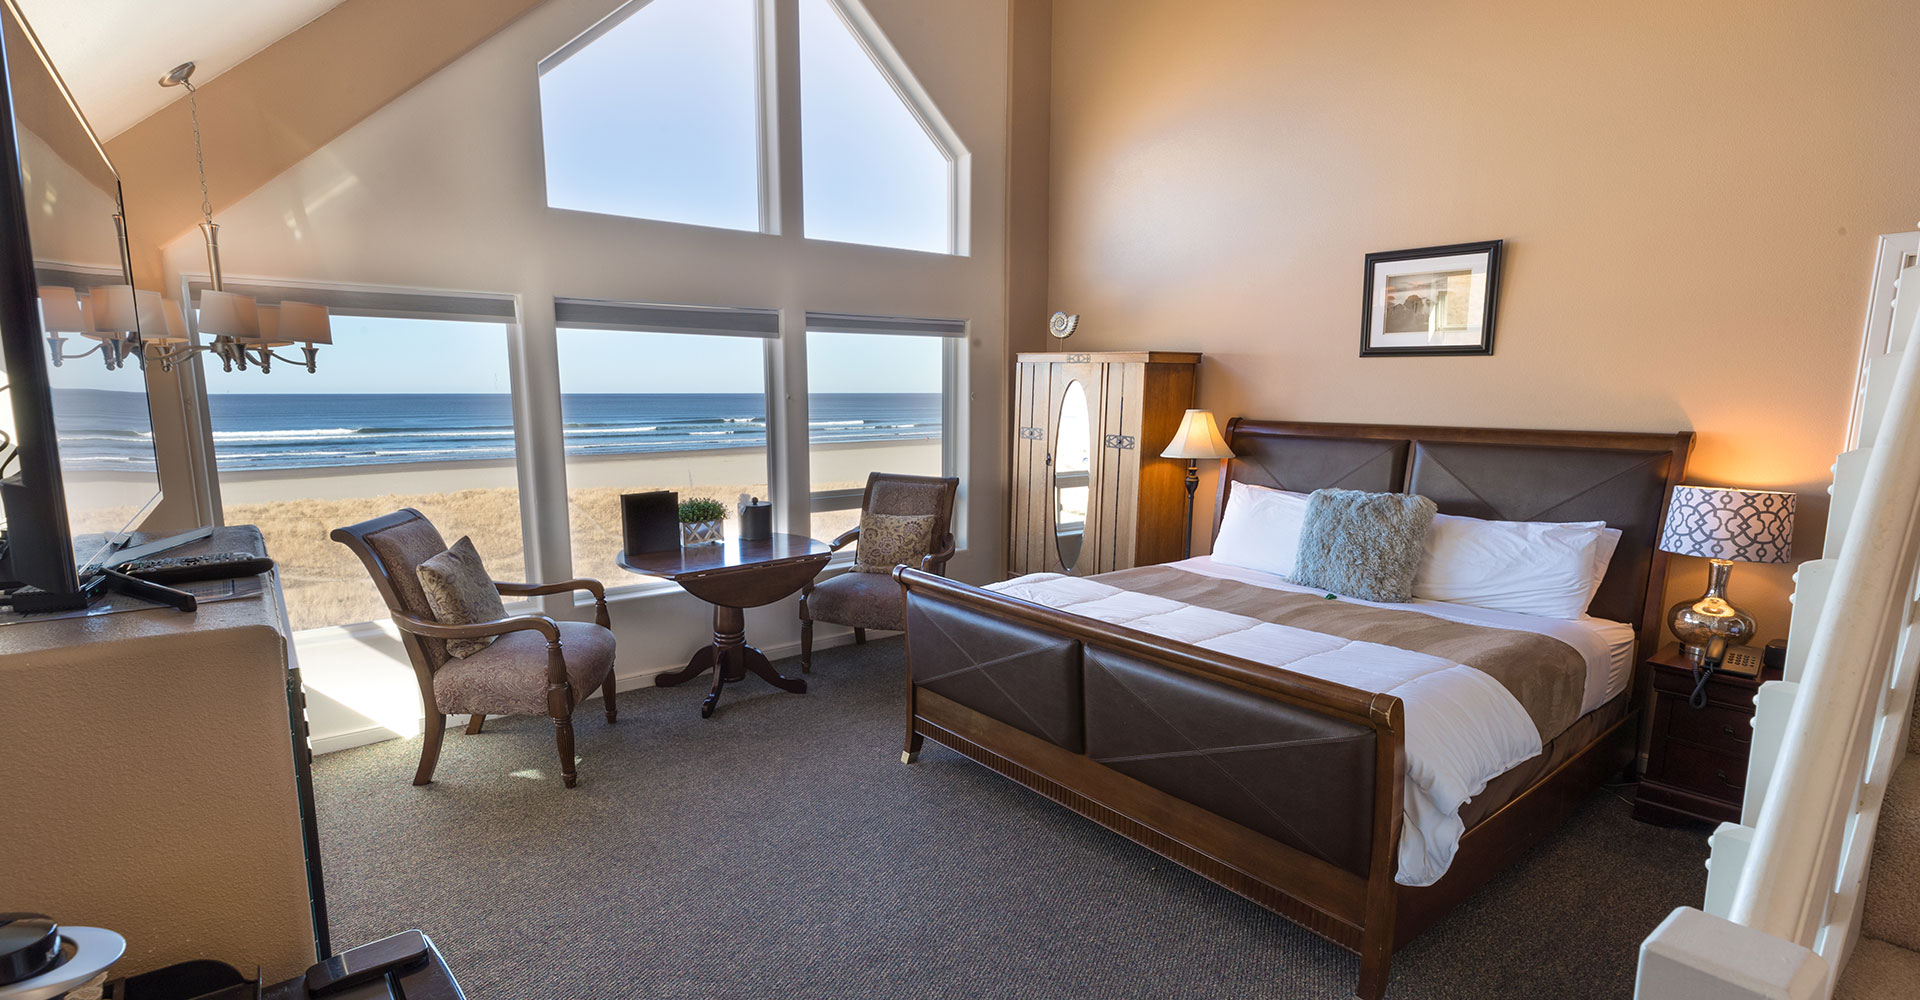 The Seaside Oceanfront Inn Contemporary Beachfront